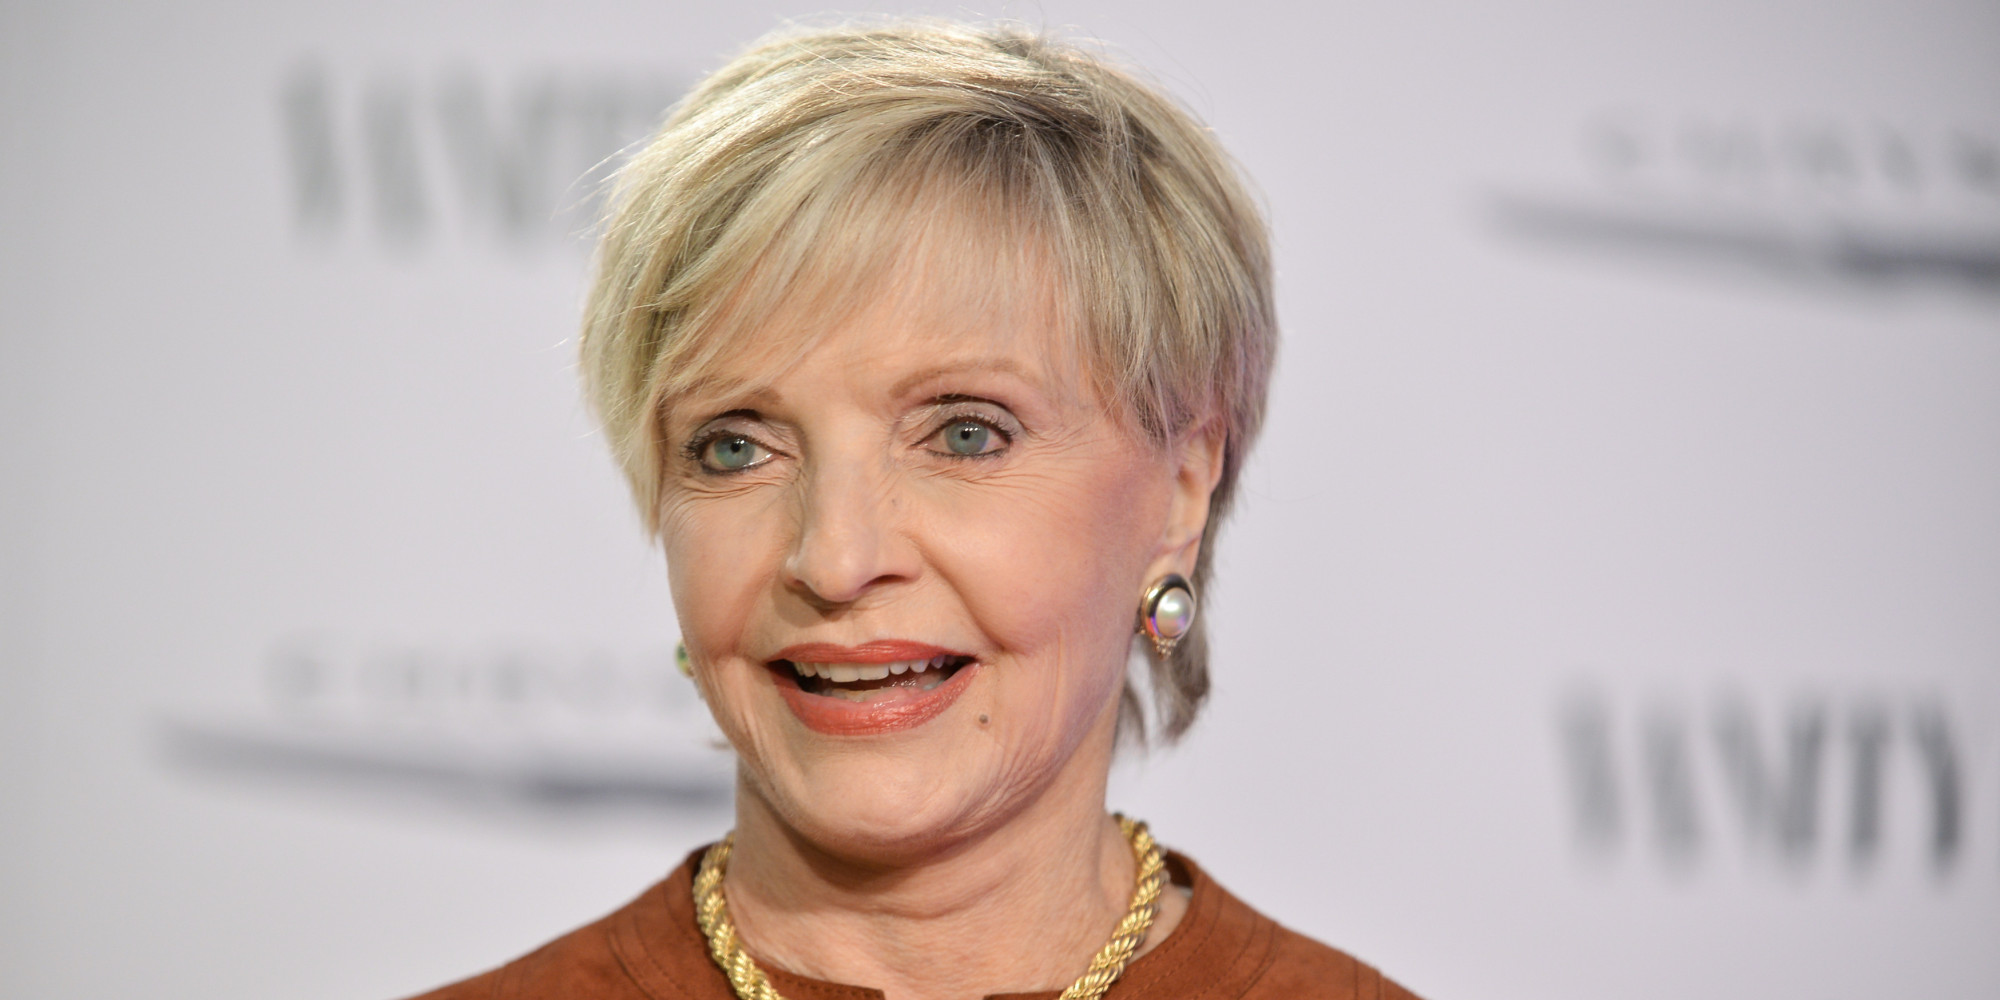 florence henderson todayflorence henderson young, florence henderson died, florence henderson and barry williams, florence henderson brady bunch, florence henderson today, florence henderson net worth, florence henderson imdb, florence henderson affair, florence henderson feet, florence henderson biography, florence henderson hot, florence henderson crabs, florence henderson dancing with the stars, florence henderson show, florence henderson and greg brady, florence henderson and peter brady, florence henderson plastic surgery